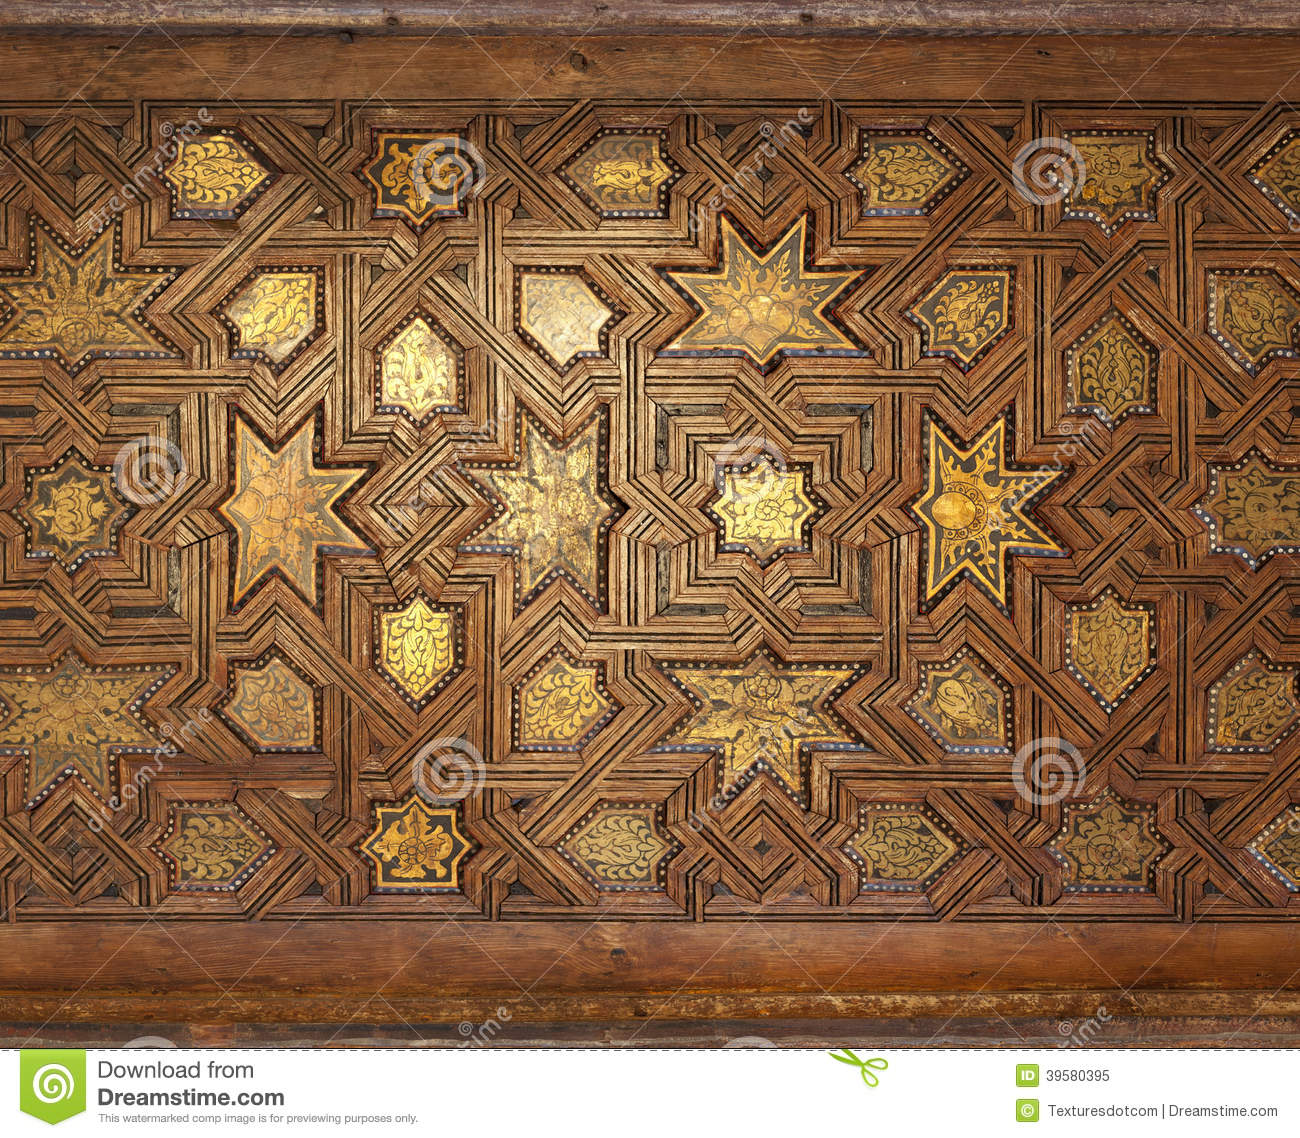 Gilded ornate moorish ceiling stock photo image 39580395 - Adorable moroccan decor style ...